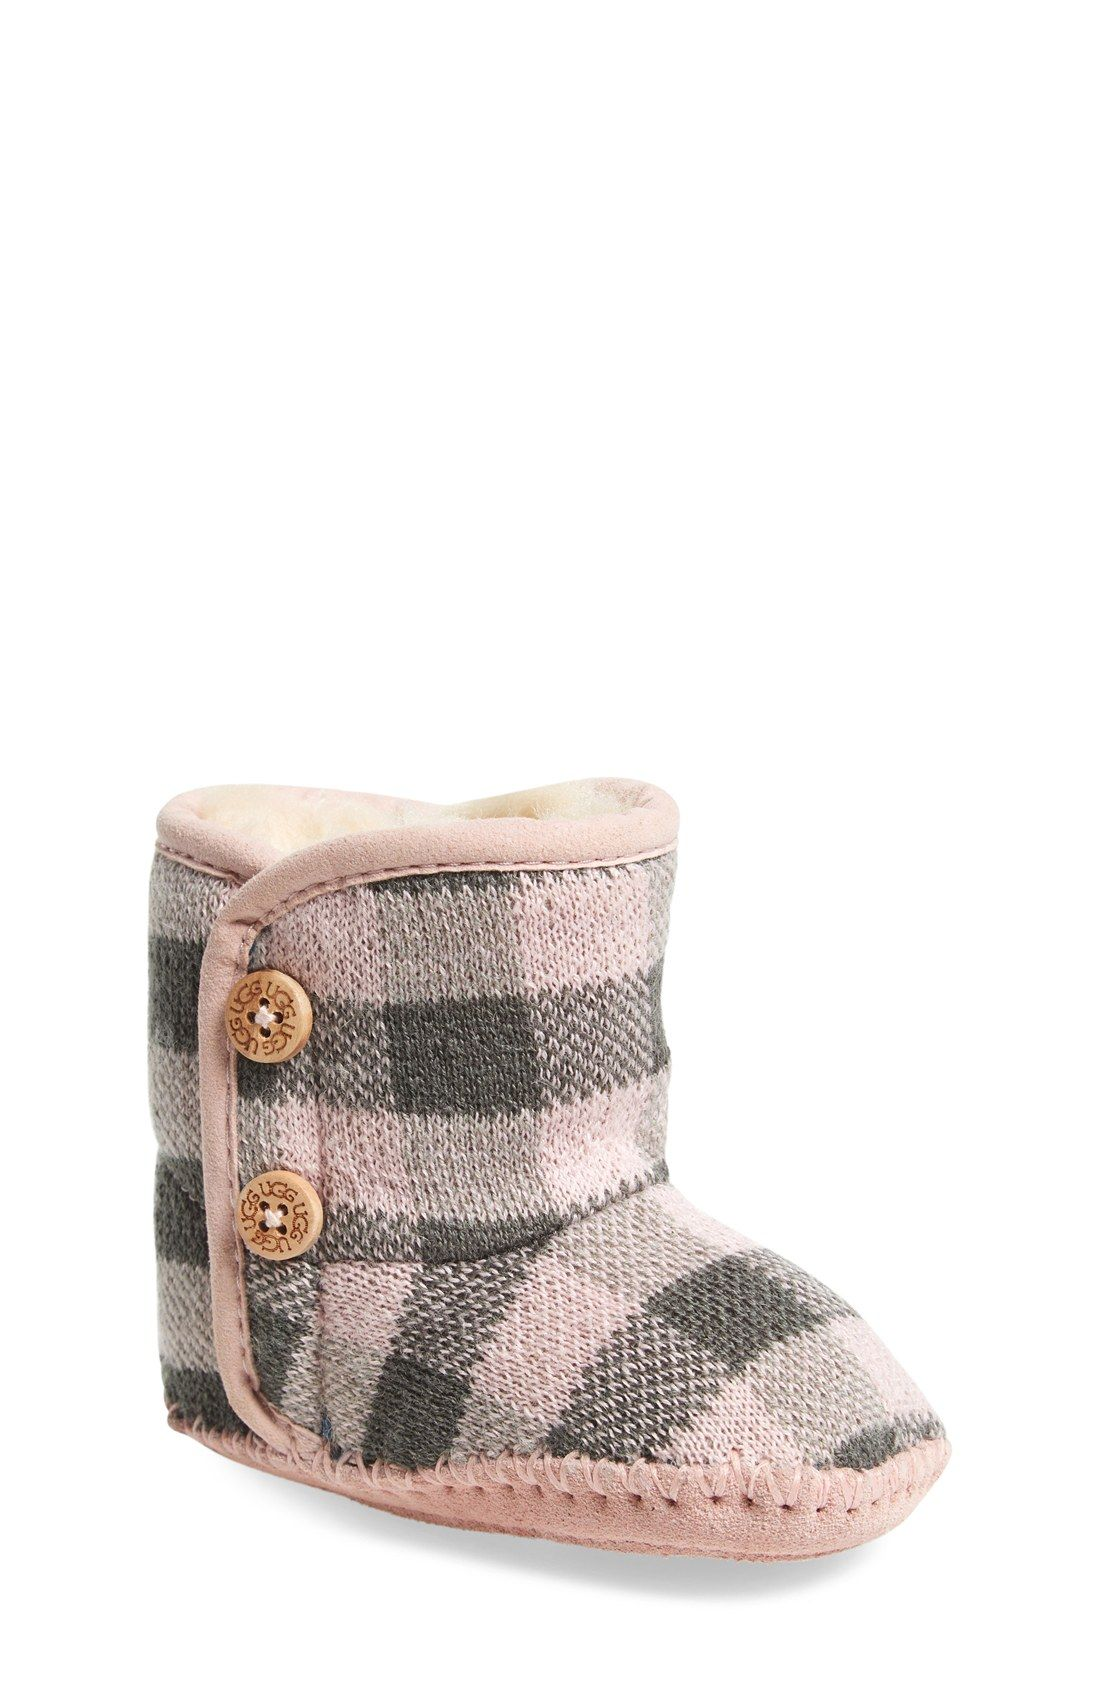 Crushing on these baby UGG booties that are cozy and cute! The pink ...